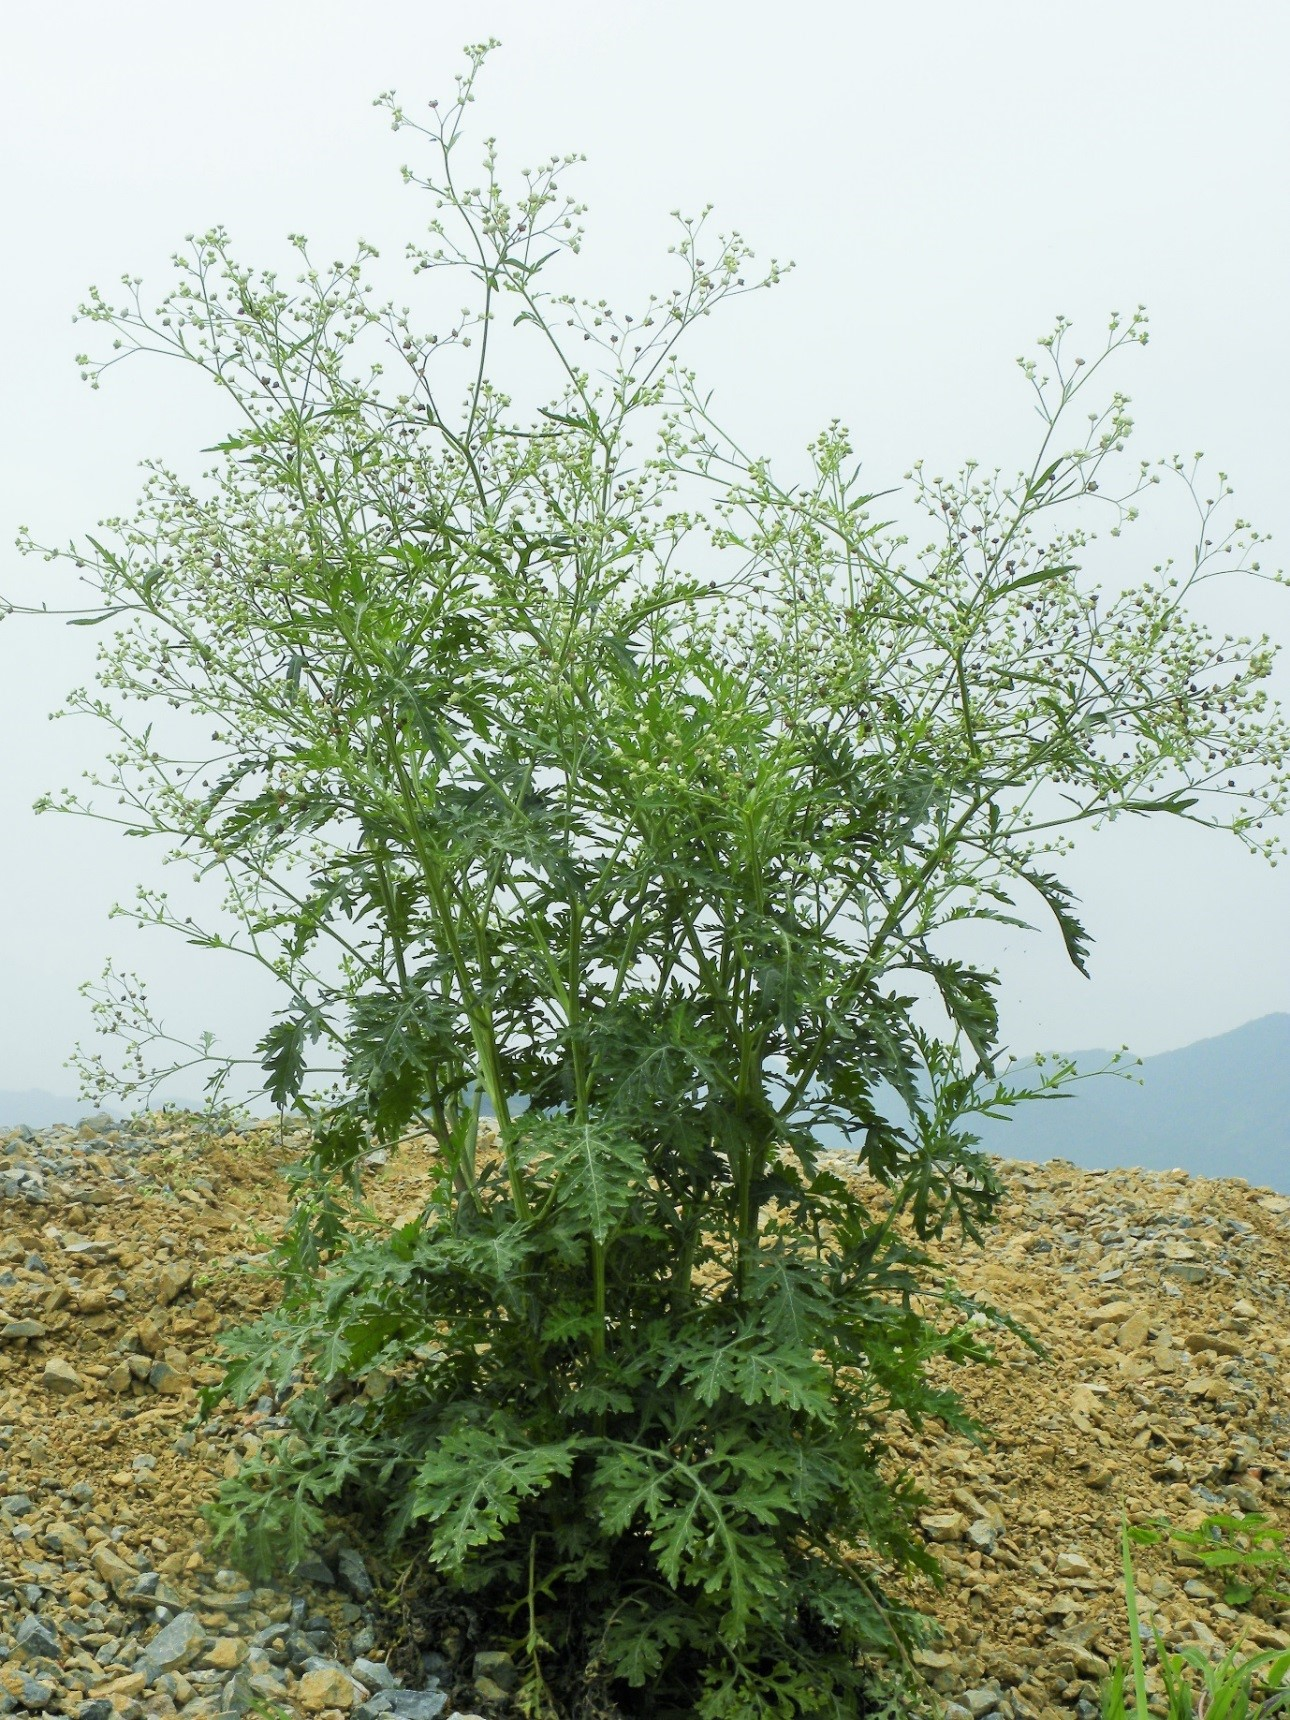 A small clump of field-growing parthenium weed plants approximately 80 days old